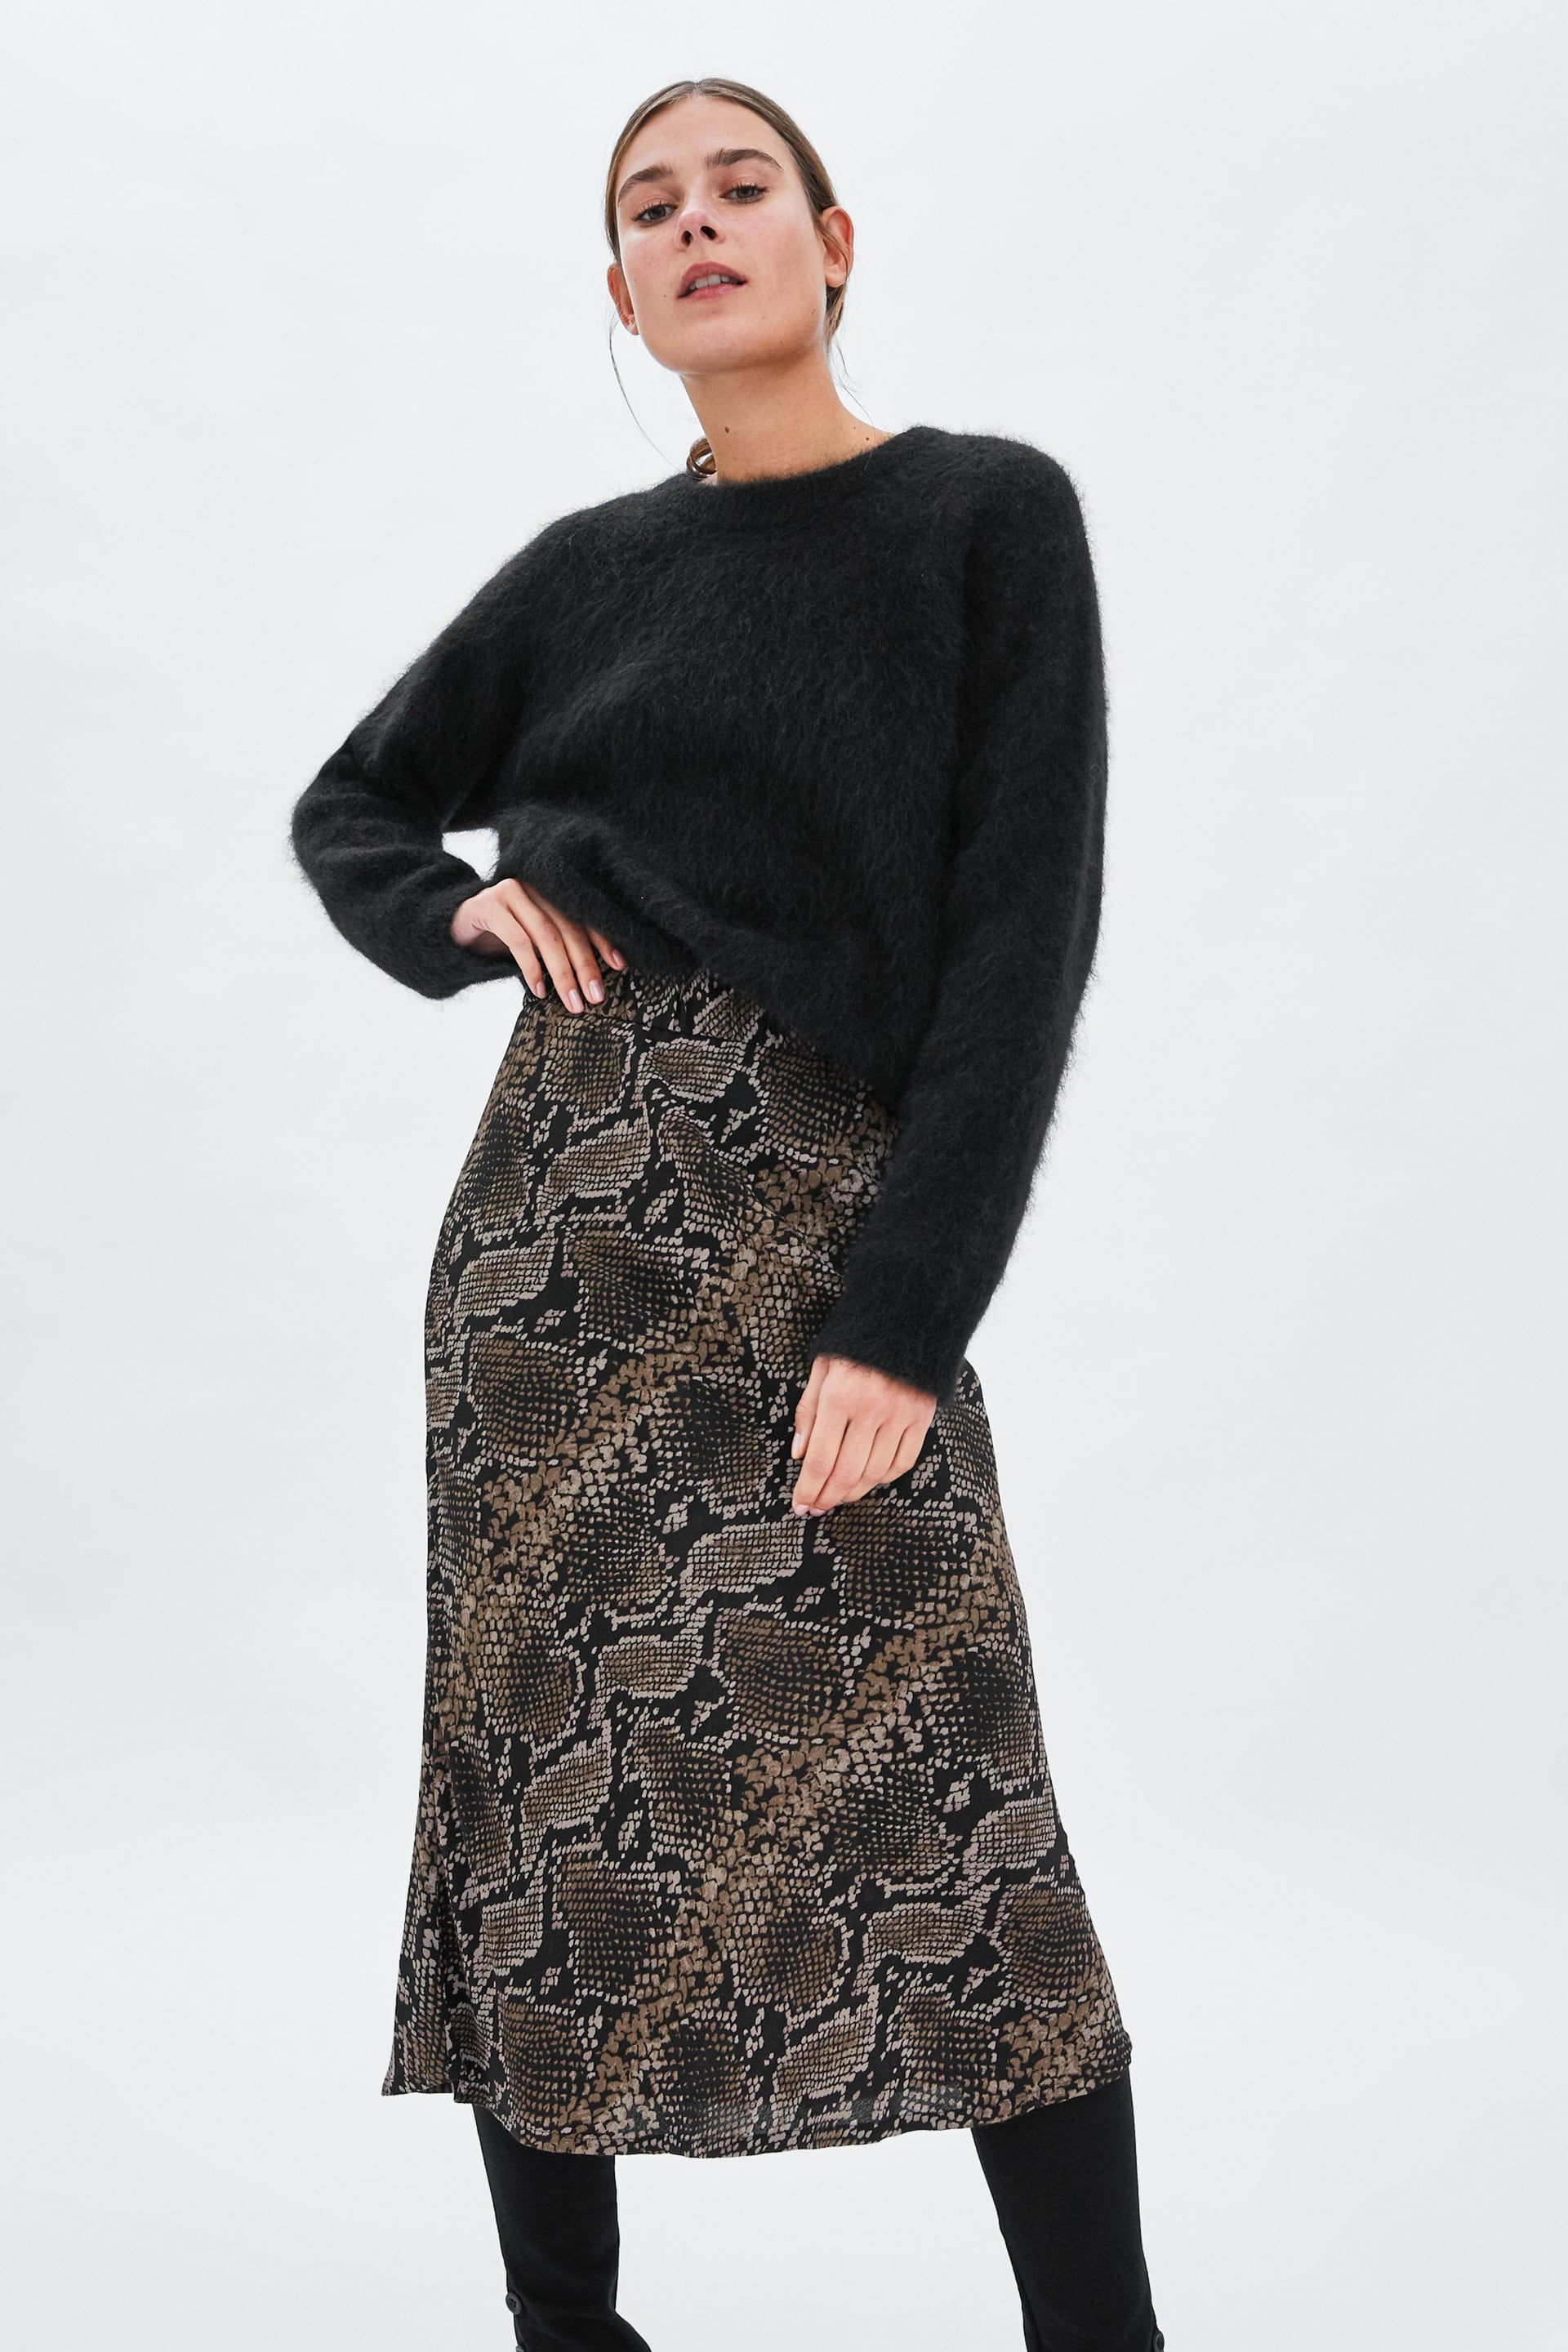 7dfa34a07 Image 2 of SNAKESKIN PRINT SKIRT from Zara | 18 October 2018 in 2019 ...